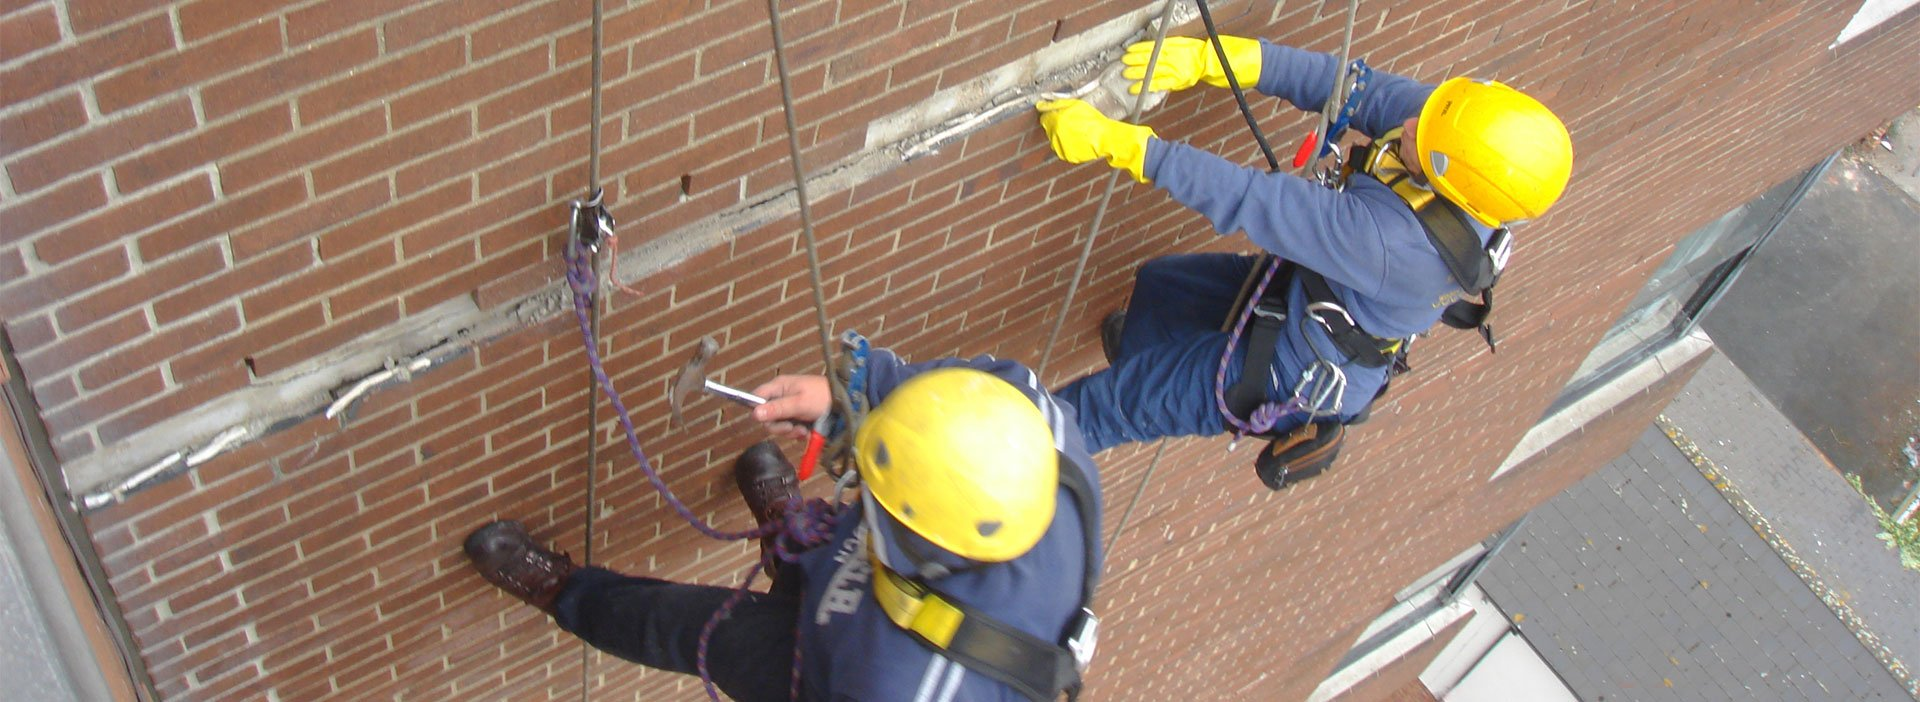 Abseiling work